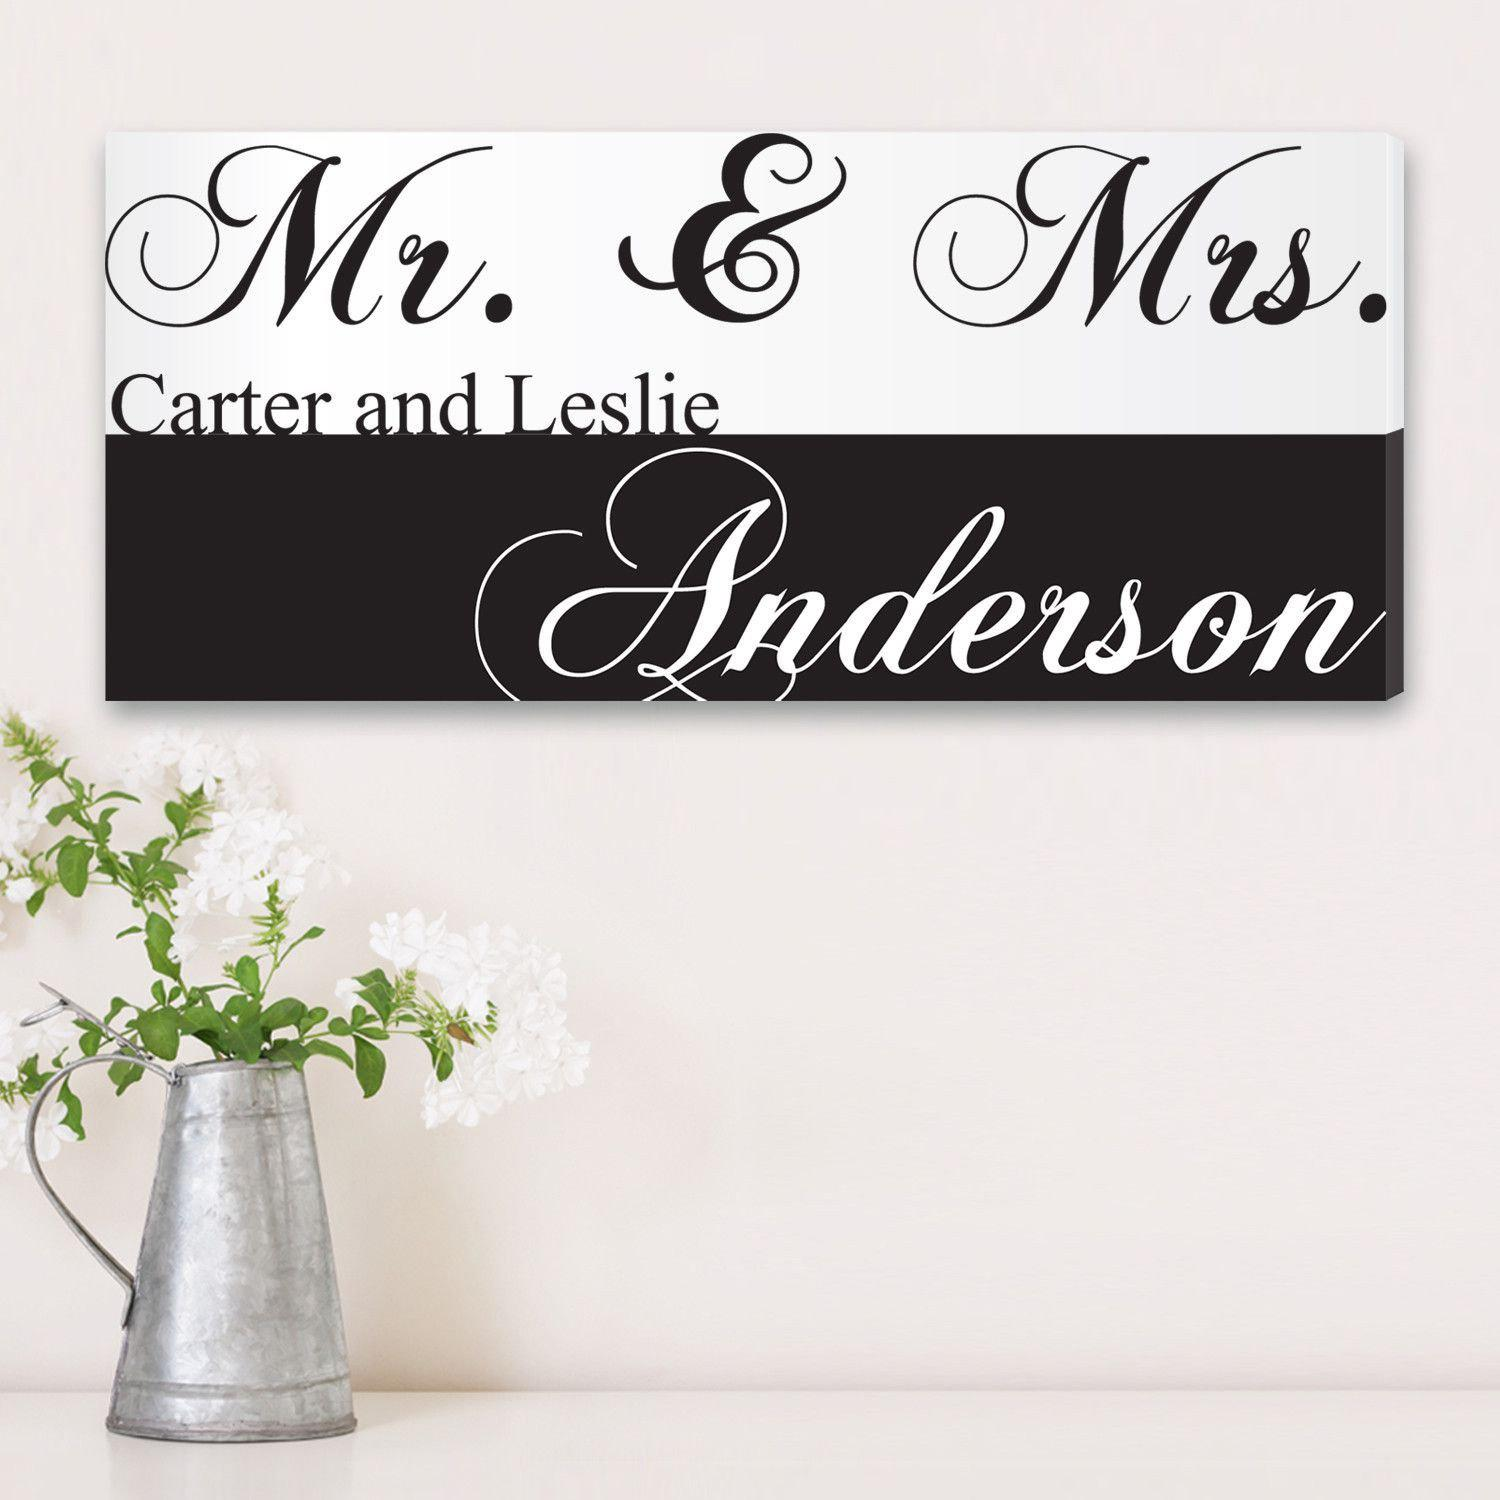 Personalized-Mr-Mrs-Couples-Canvas-Sign